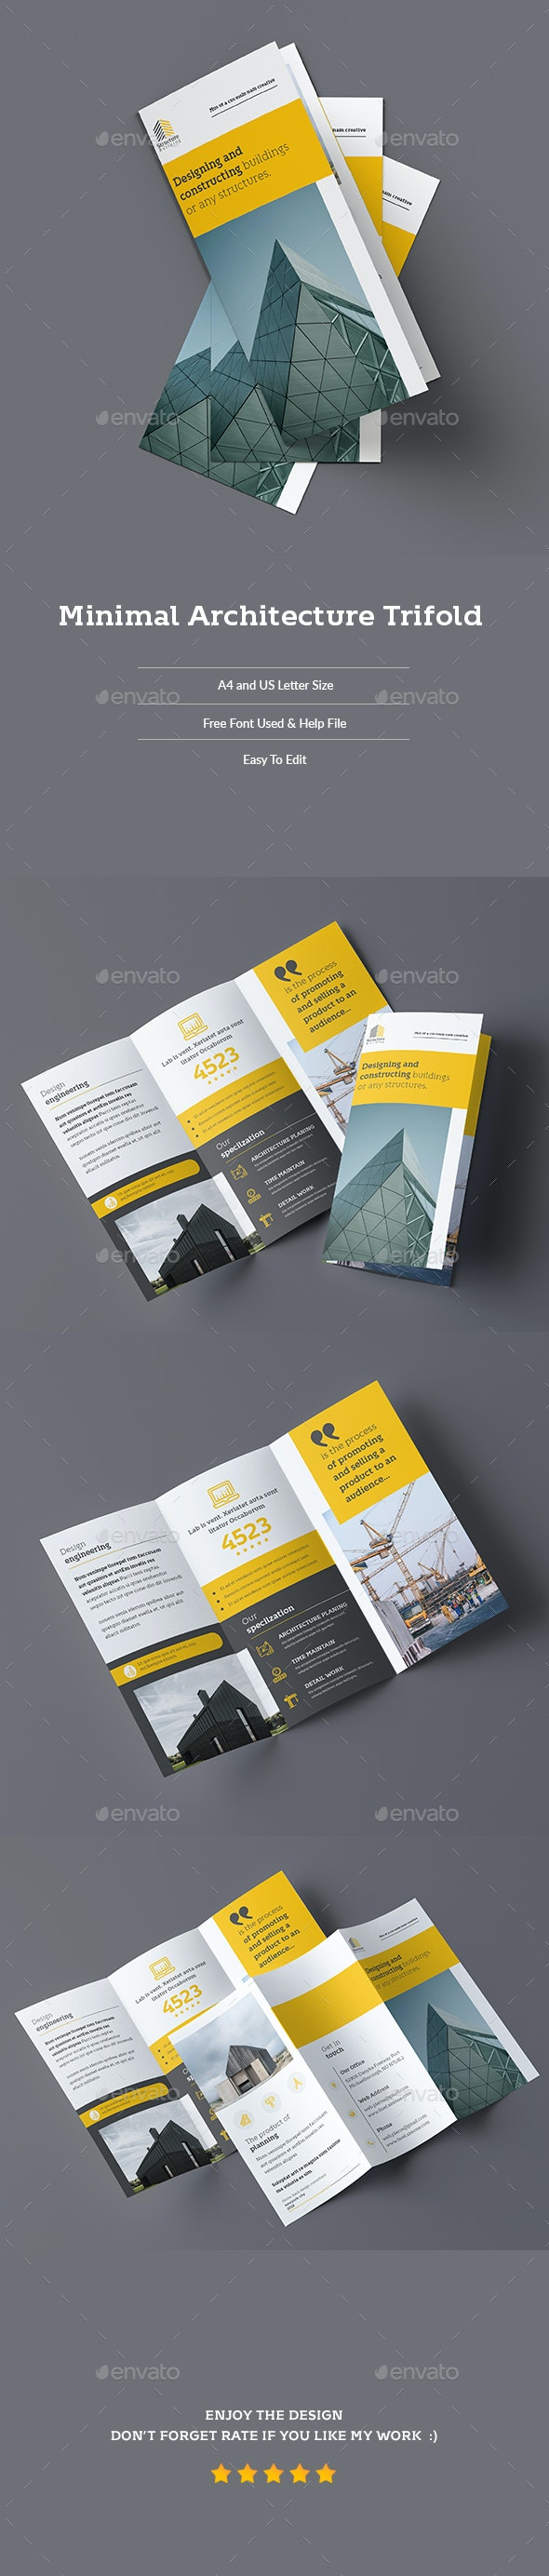 Minimal Architecture Trifold - Corporate Brochures